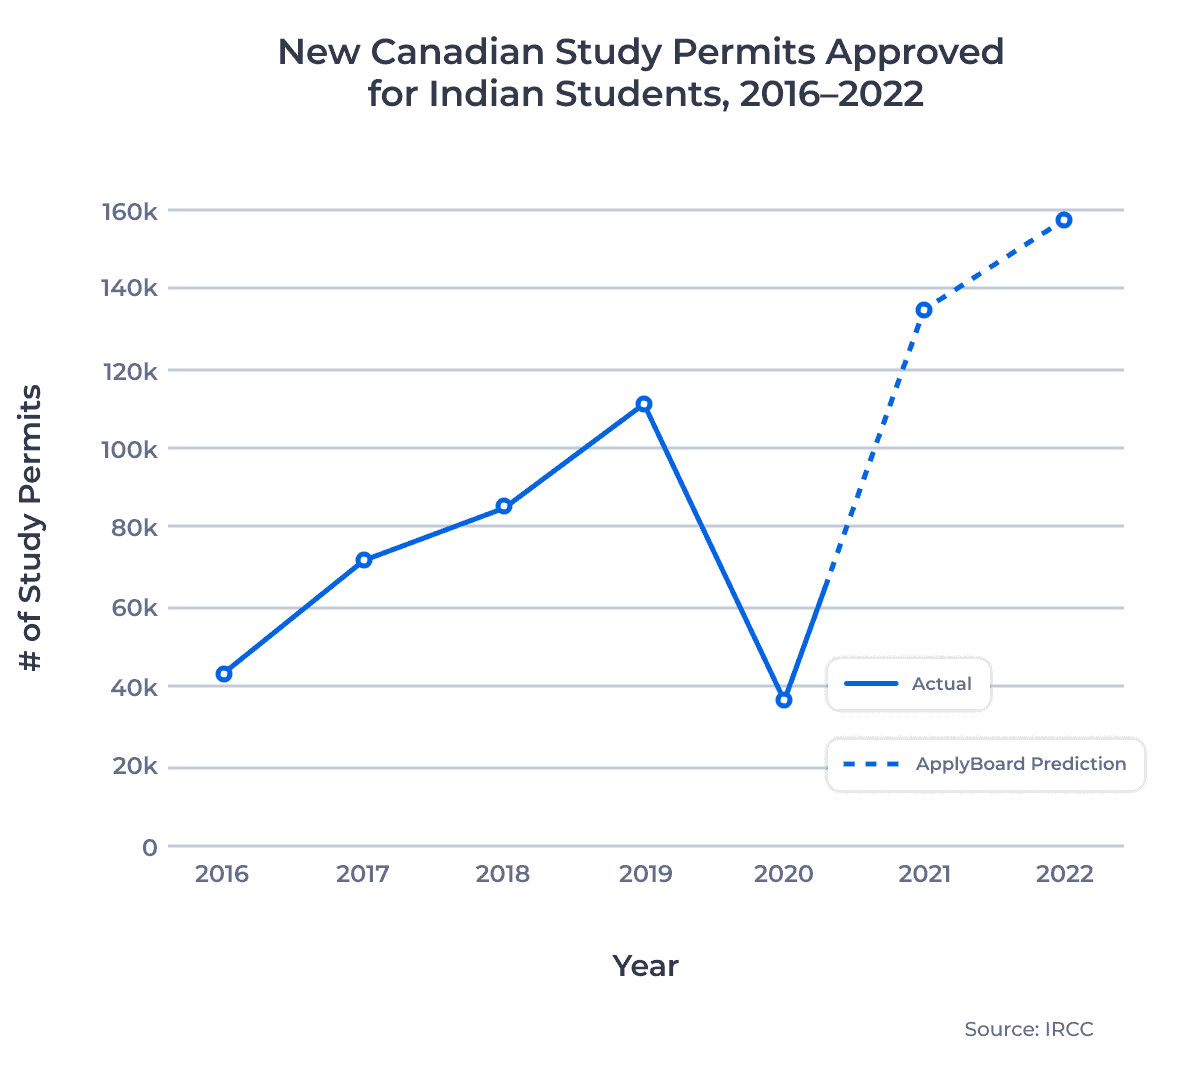 Line chart showing the number of new Canadian study permit approvals for Indian students from 2016 to 2020, and projecting into 2021 and 2022.